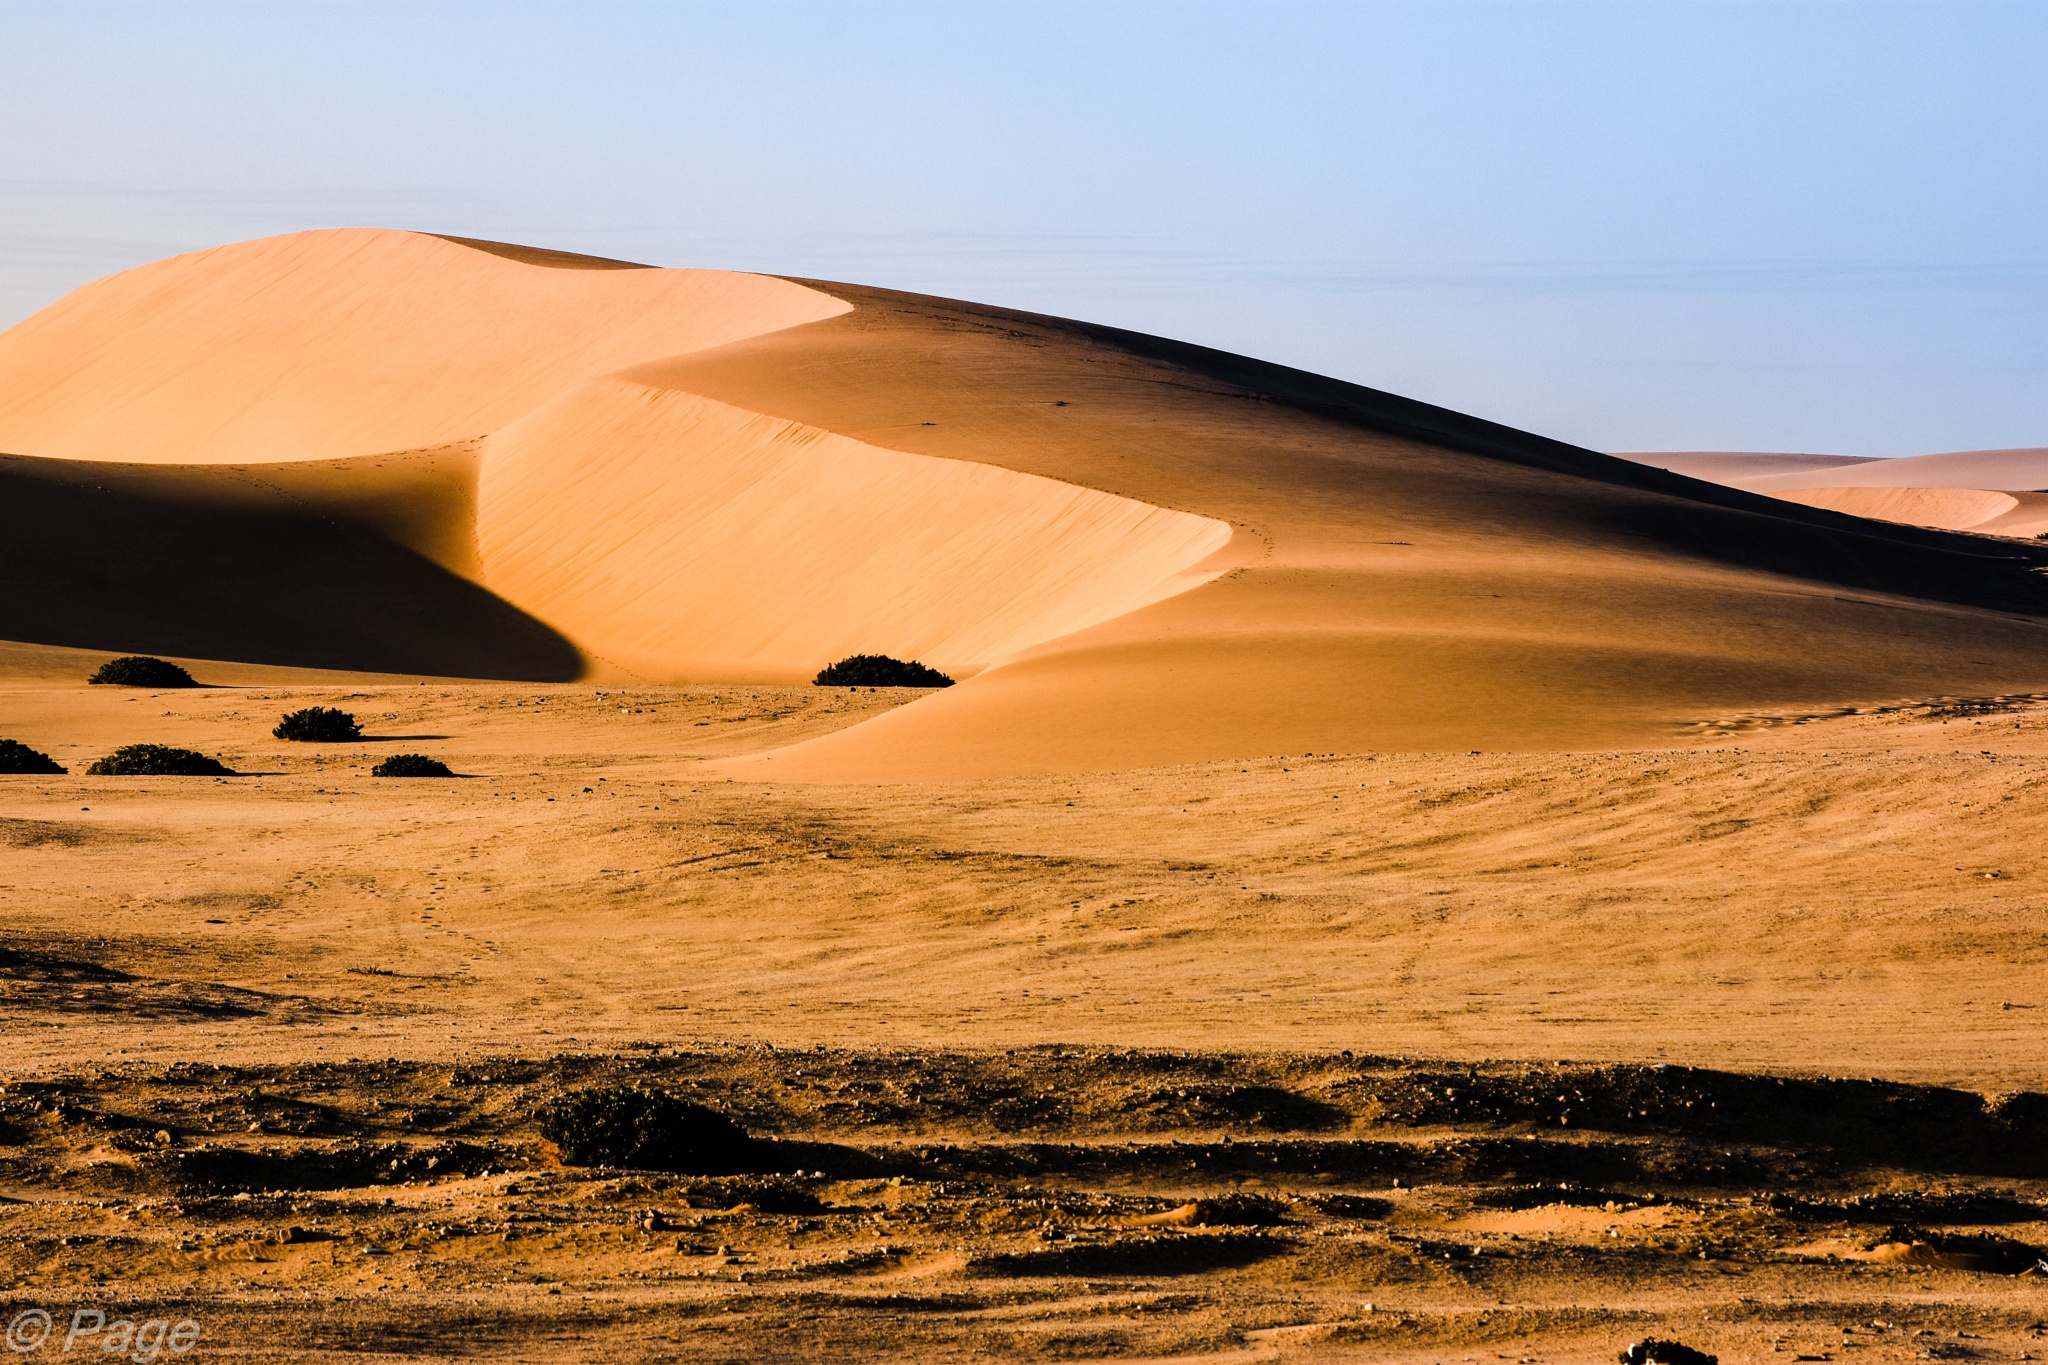 Morning sun kisses to desert dunes by Harrold Page